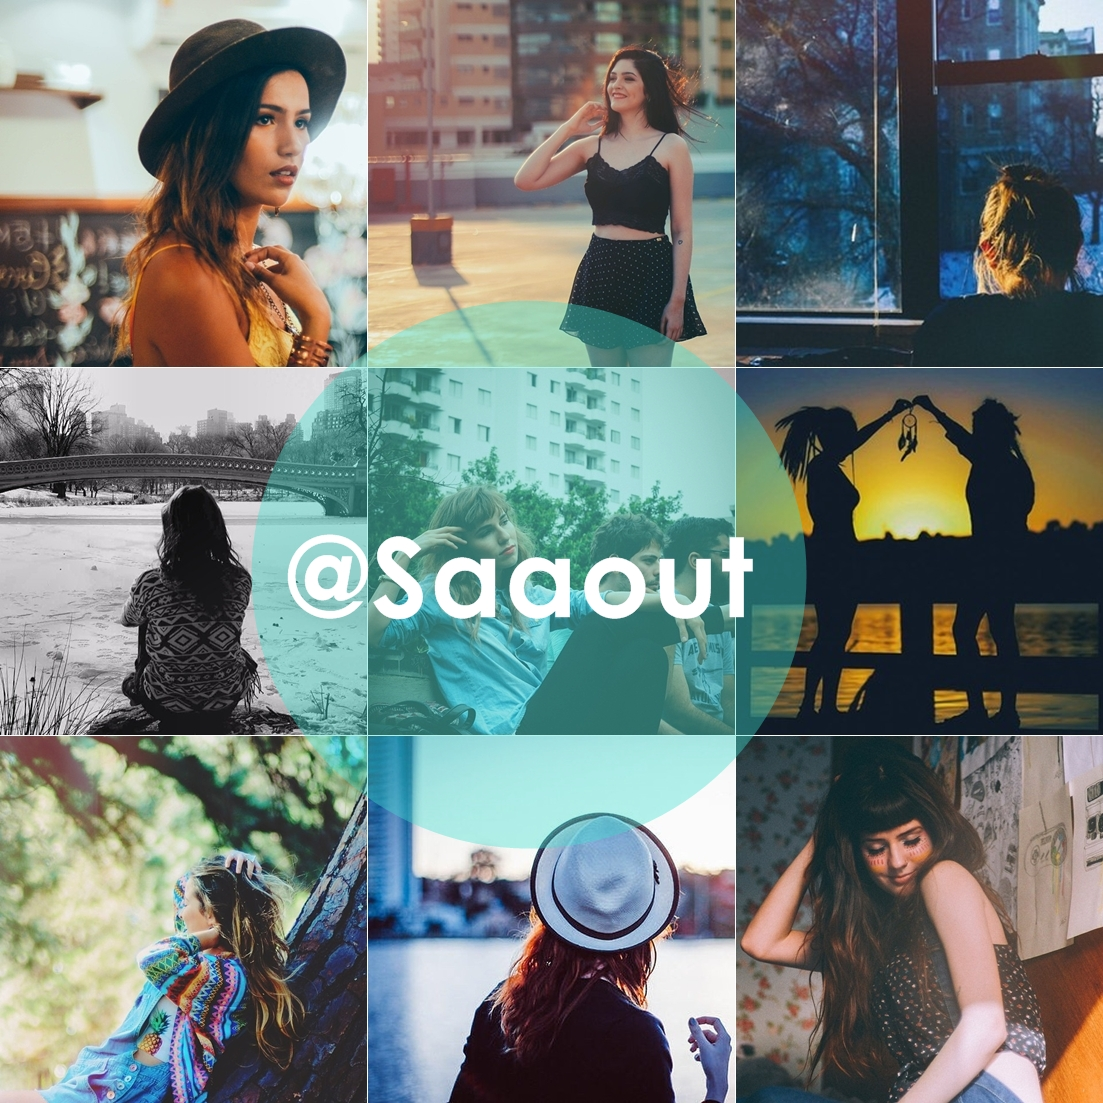 instagram-saaout